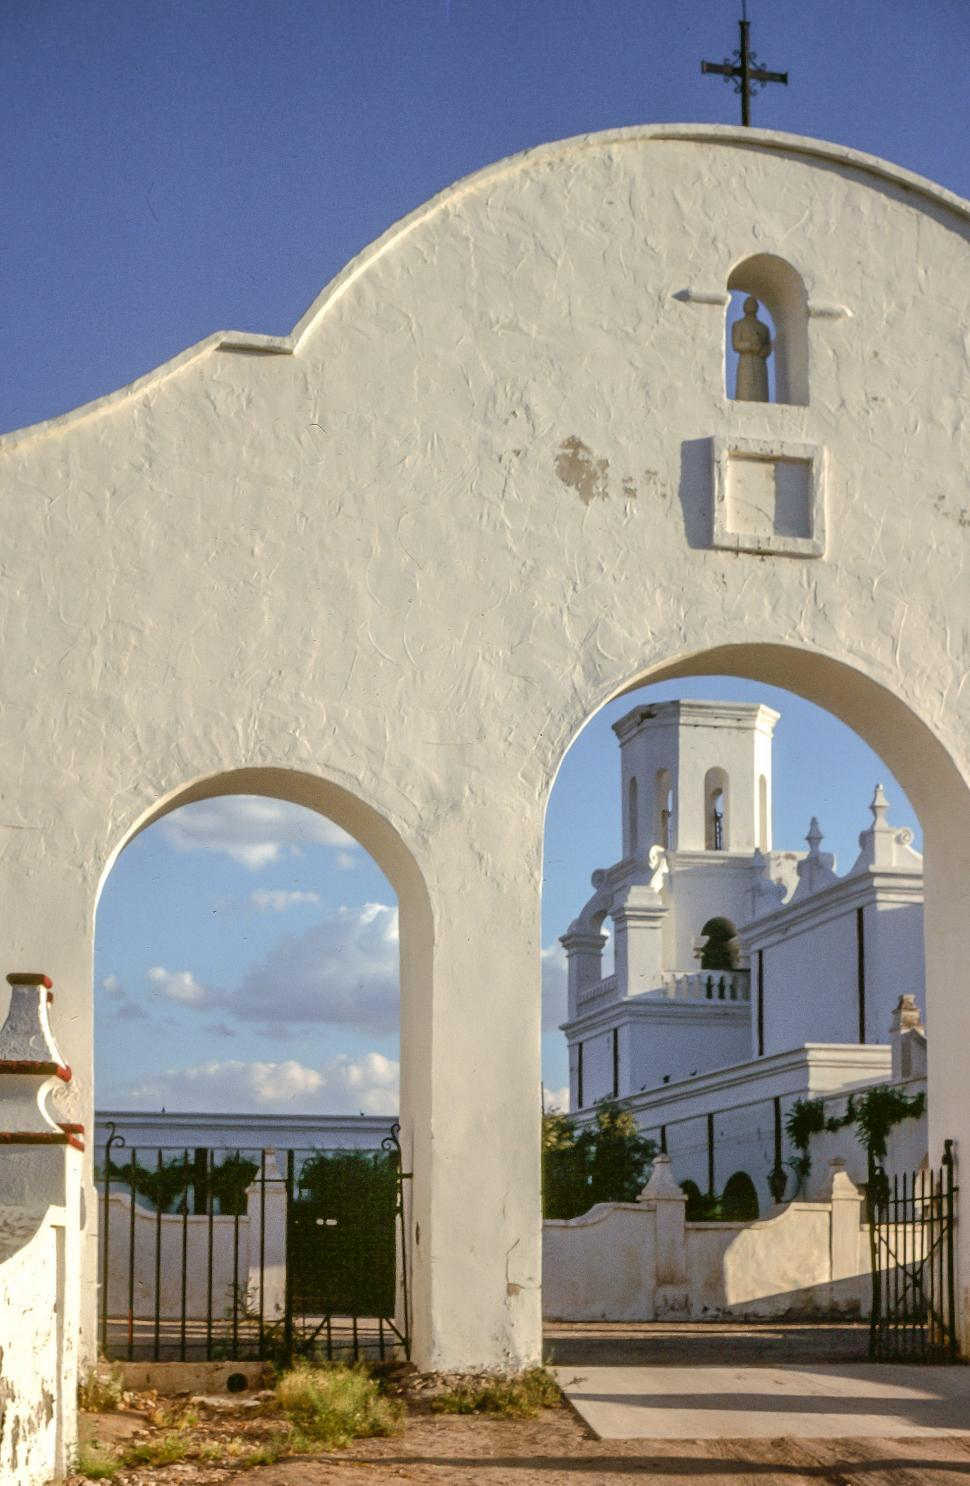 Download Free Stock HD Photo of Arches of San Xavier del Bac Online